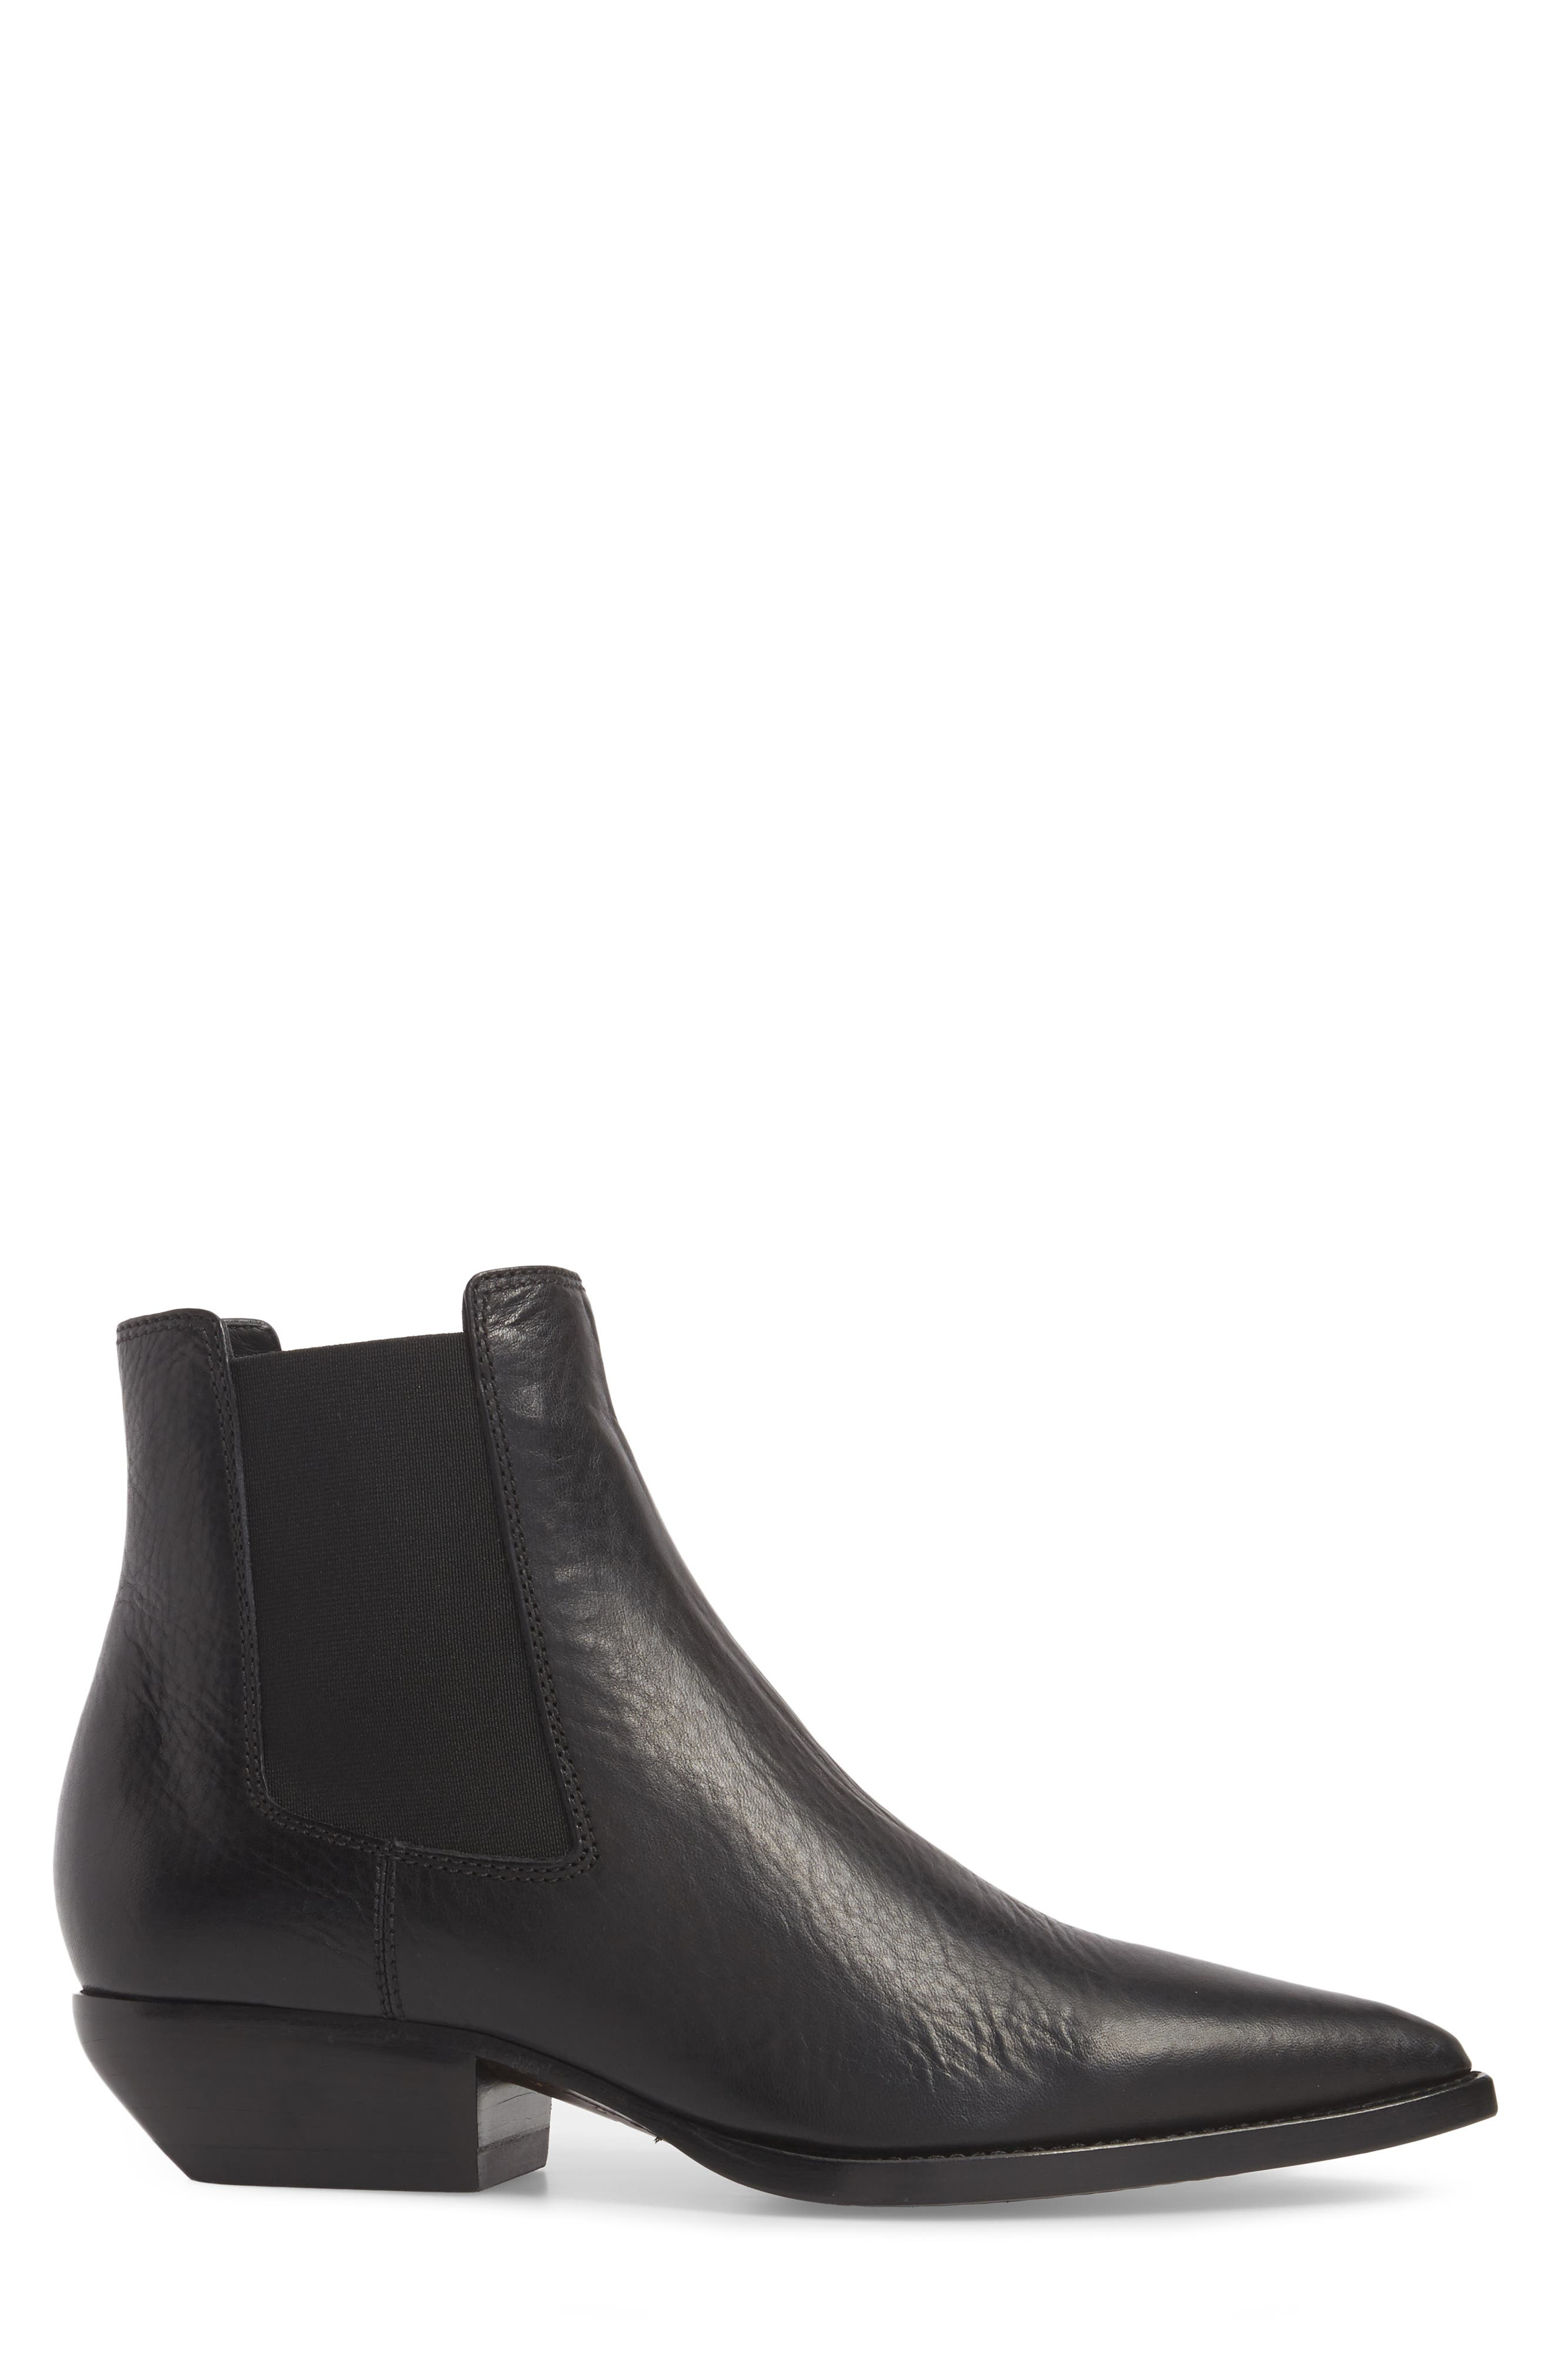 Theo 40 Chelsea Boot,                             Alternate thumbnail 3, color,                             BLACK LEATHER